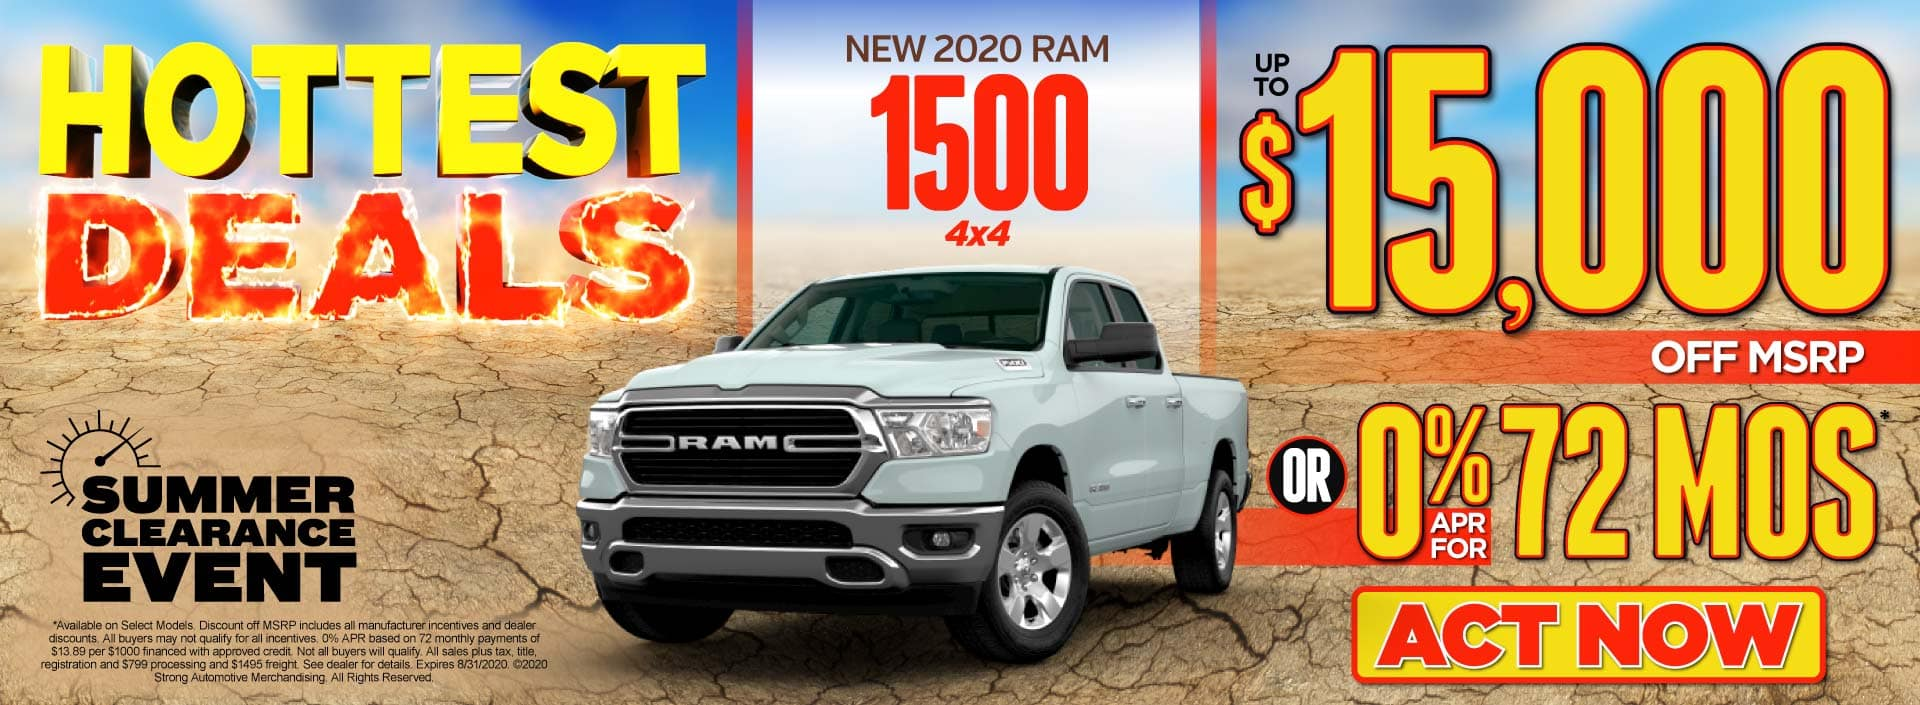 New 2020 Ram 1500 4x4 - up to $15,000 off MSRP or 0% APR for 72 months - Click to View Inventory